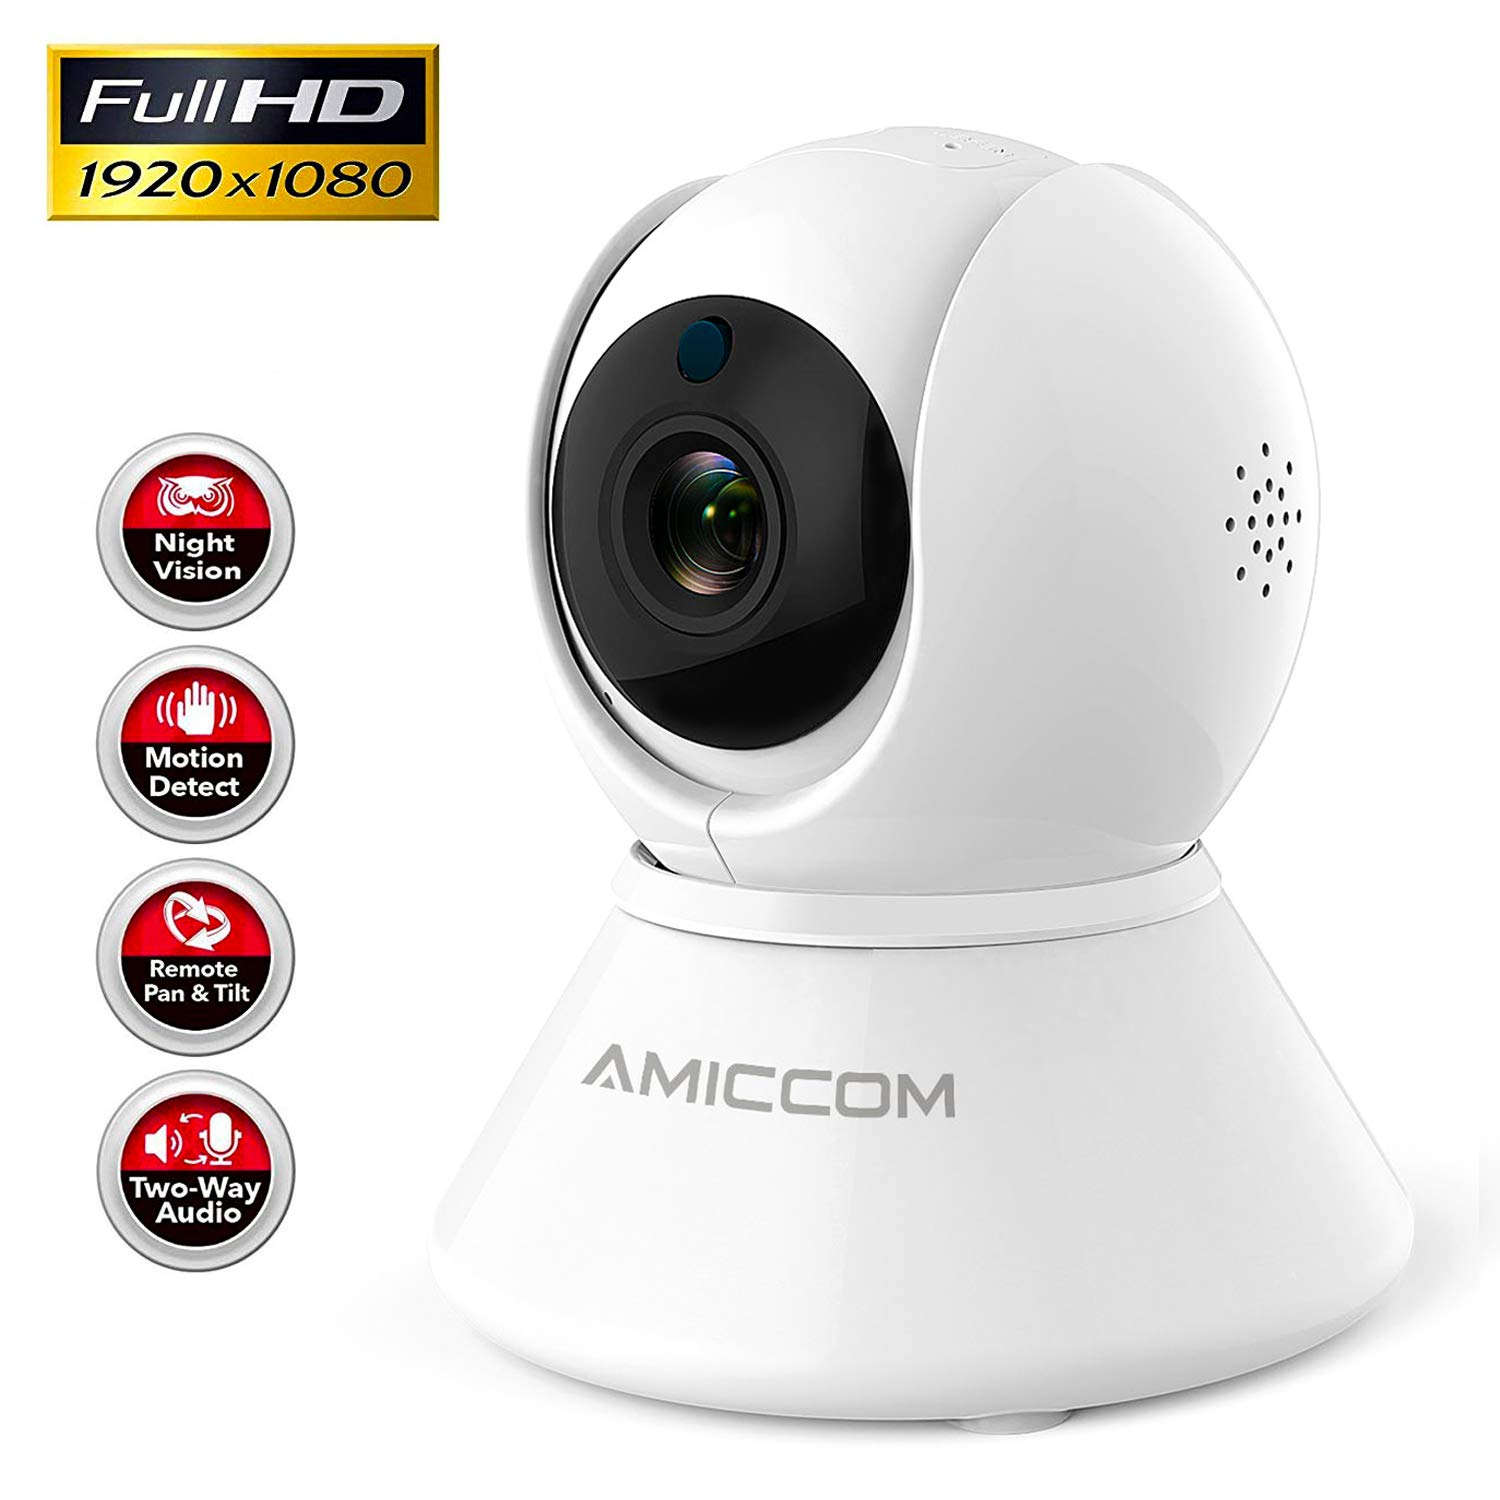 WiFi Camera-1080P Security Camera System Wireless Camera Indoor 2.4Ghz Home Camera with 2 Way Audio Night Vision, Auto-Cruise, Motion Tracker, Activity Alert,Support iOS Android Windows